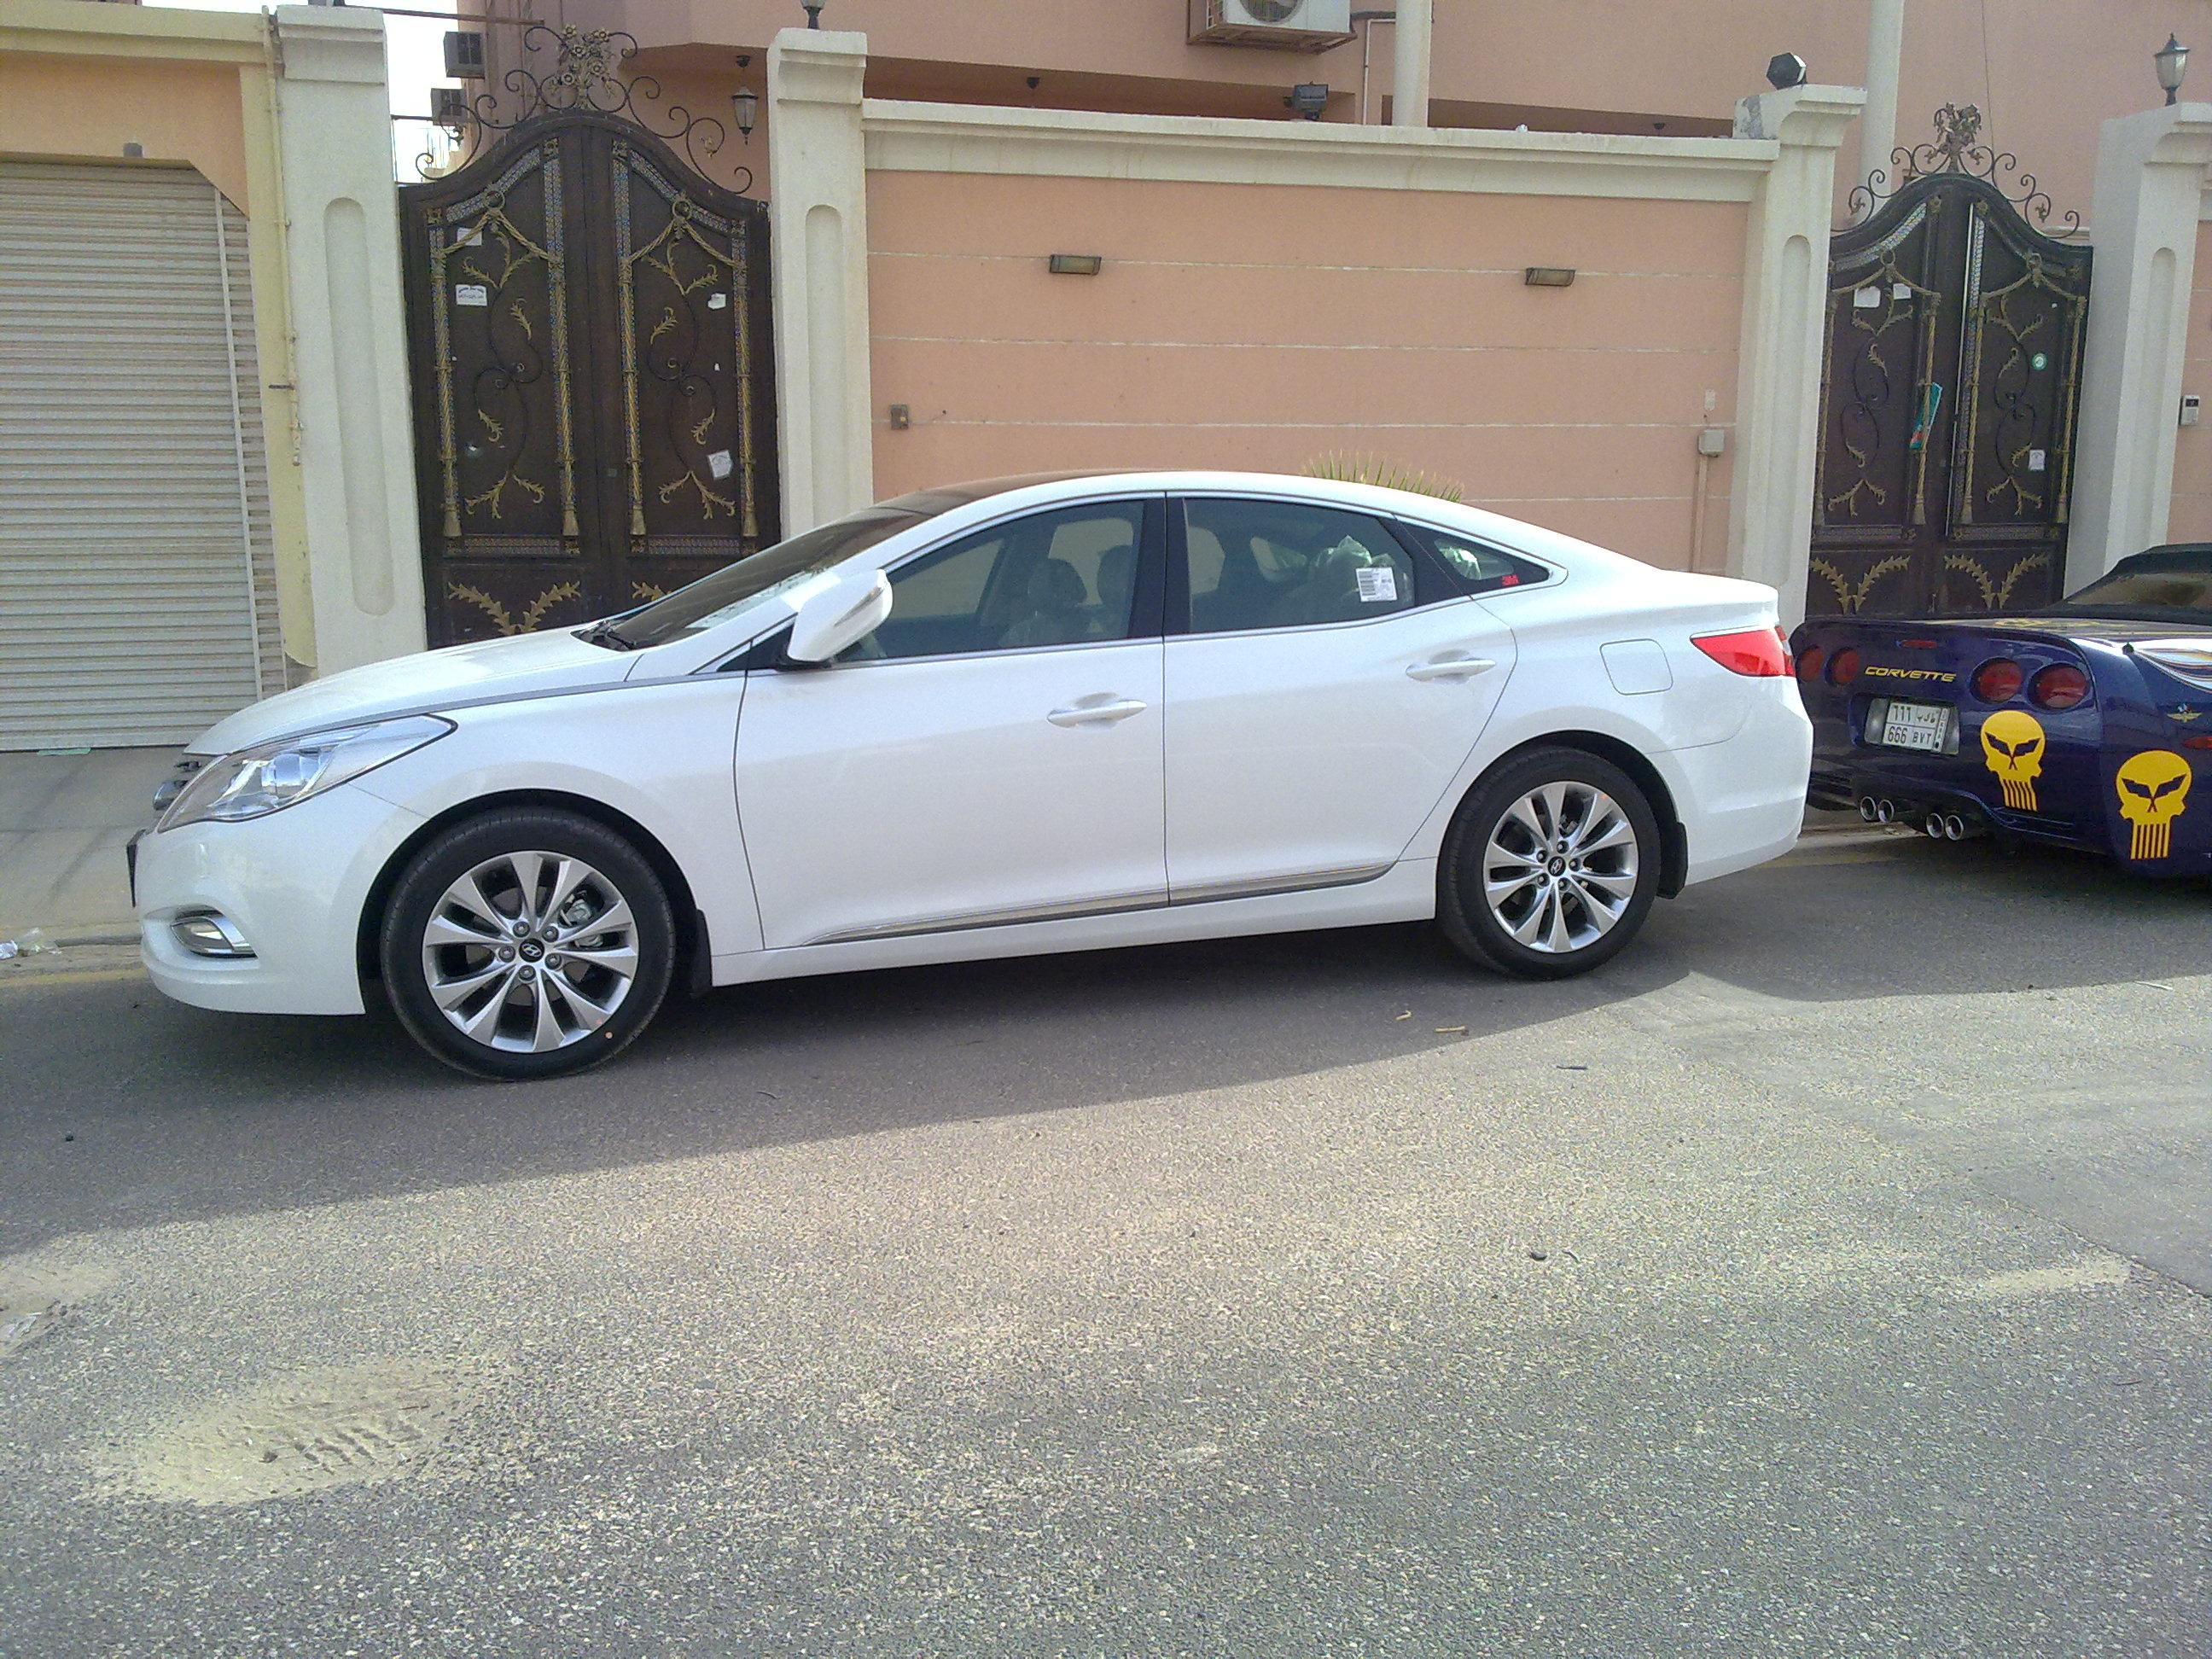 firebleed 2012 Hyundai Azera Specs Photos Modification Info at